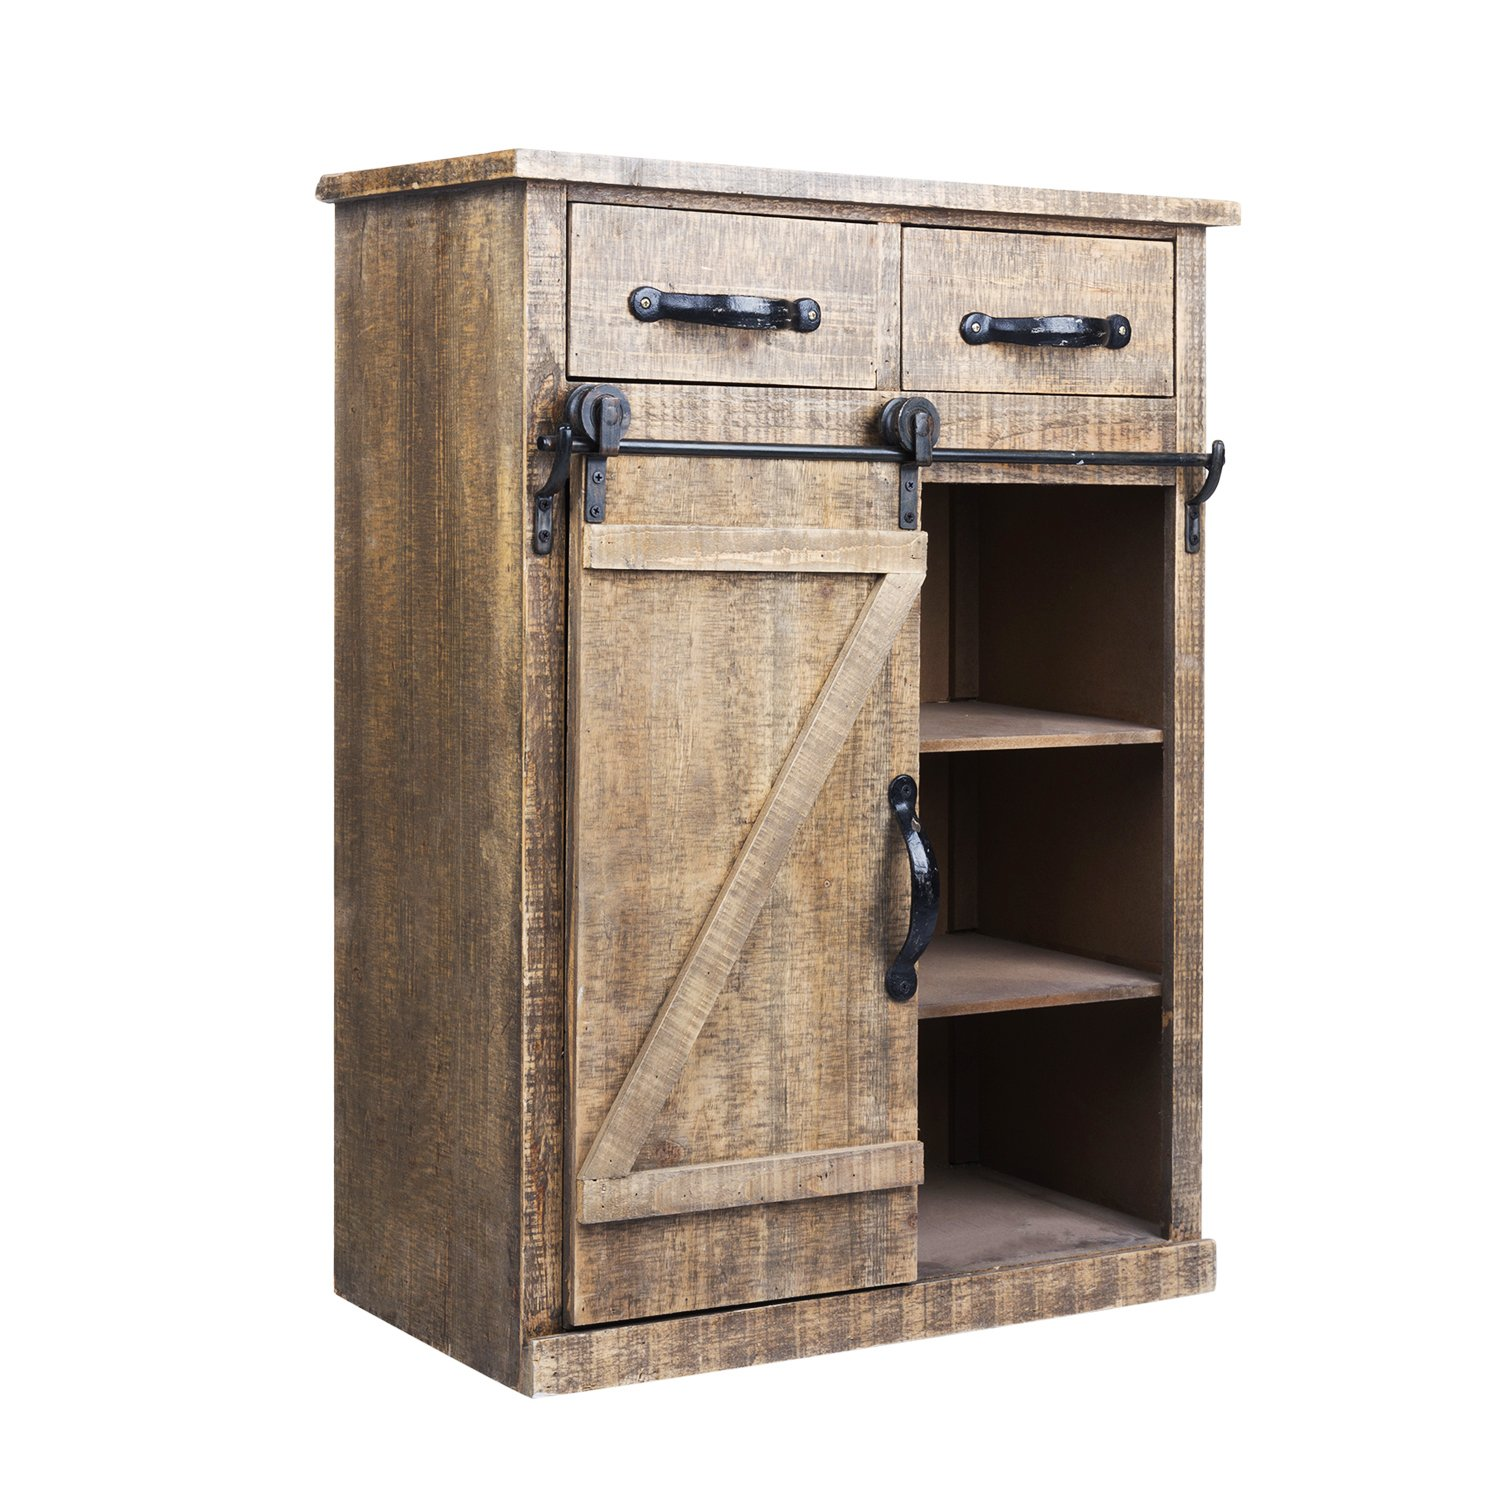 rustic barn door wood end table console accent with cabinet farmhouse storage country vintage furniture kitchen dining retro designer small armchair tier unusual bedside lamps